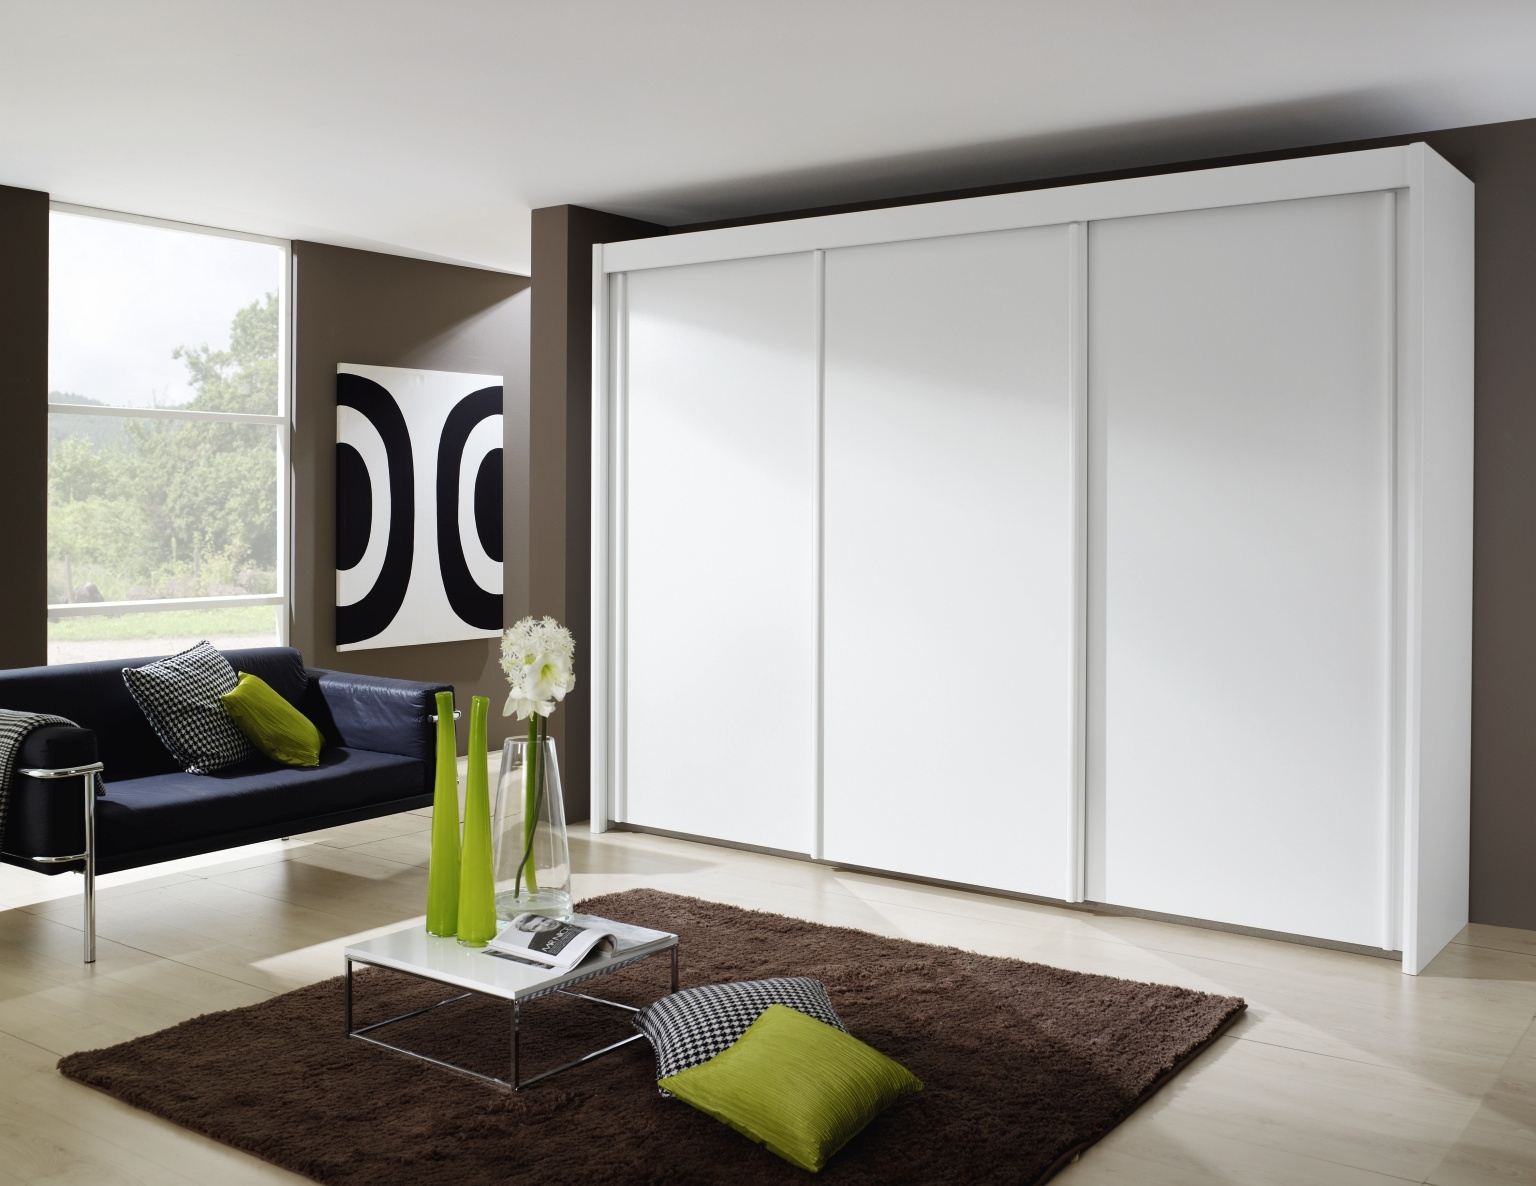 Rauch Imperial 3 Door Sliding Wardrobe in White - W 280cm